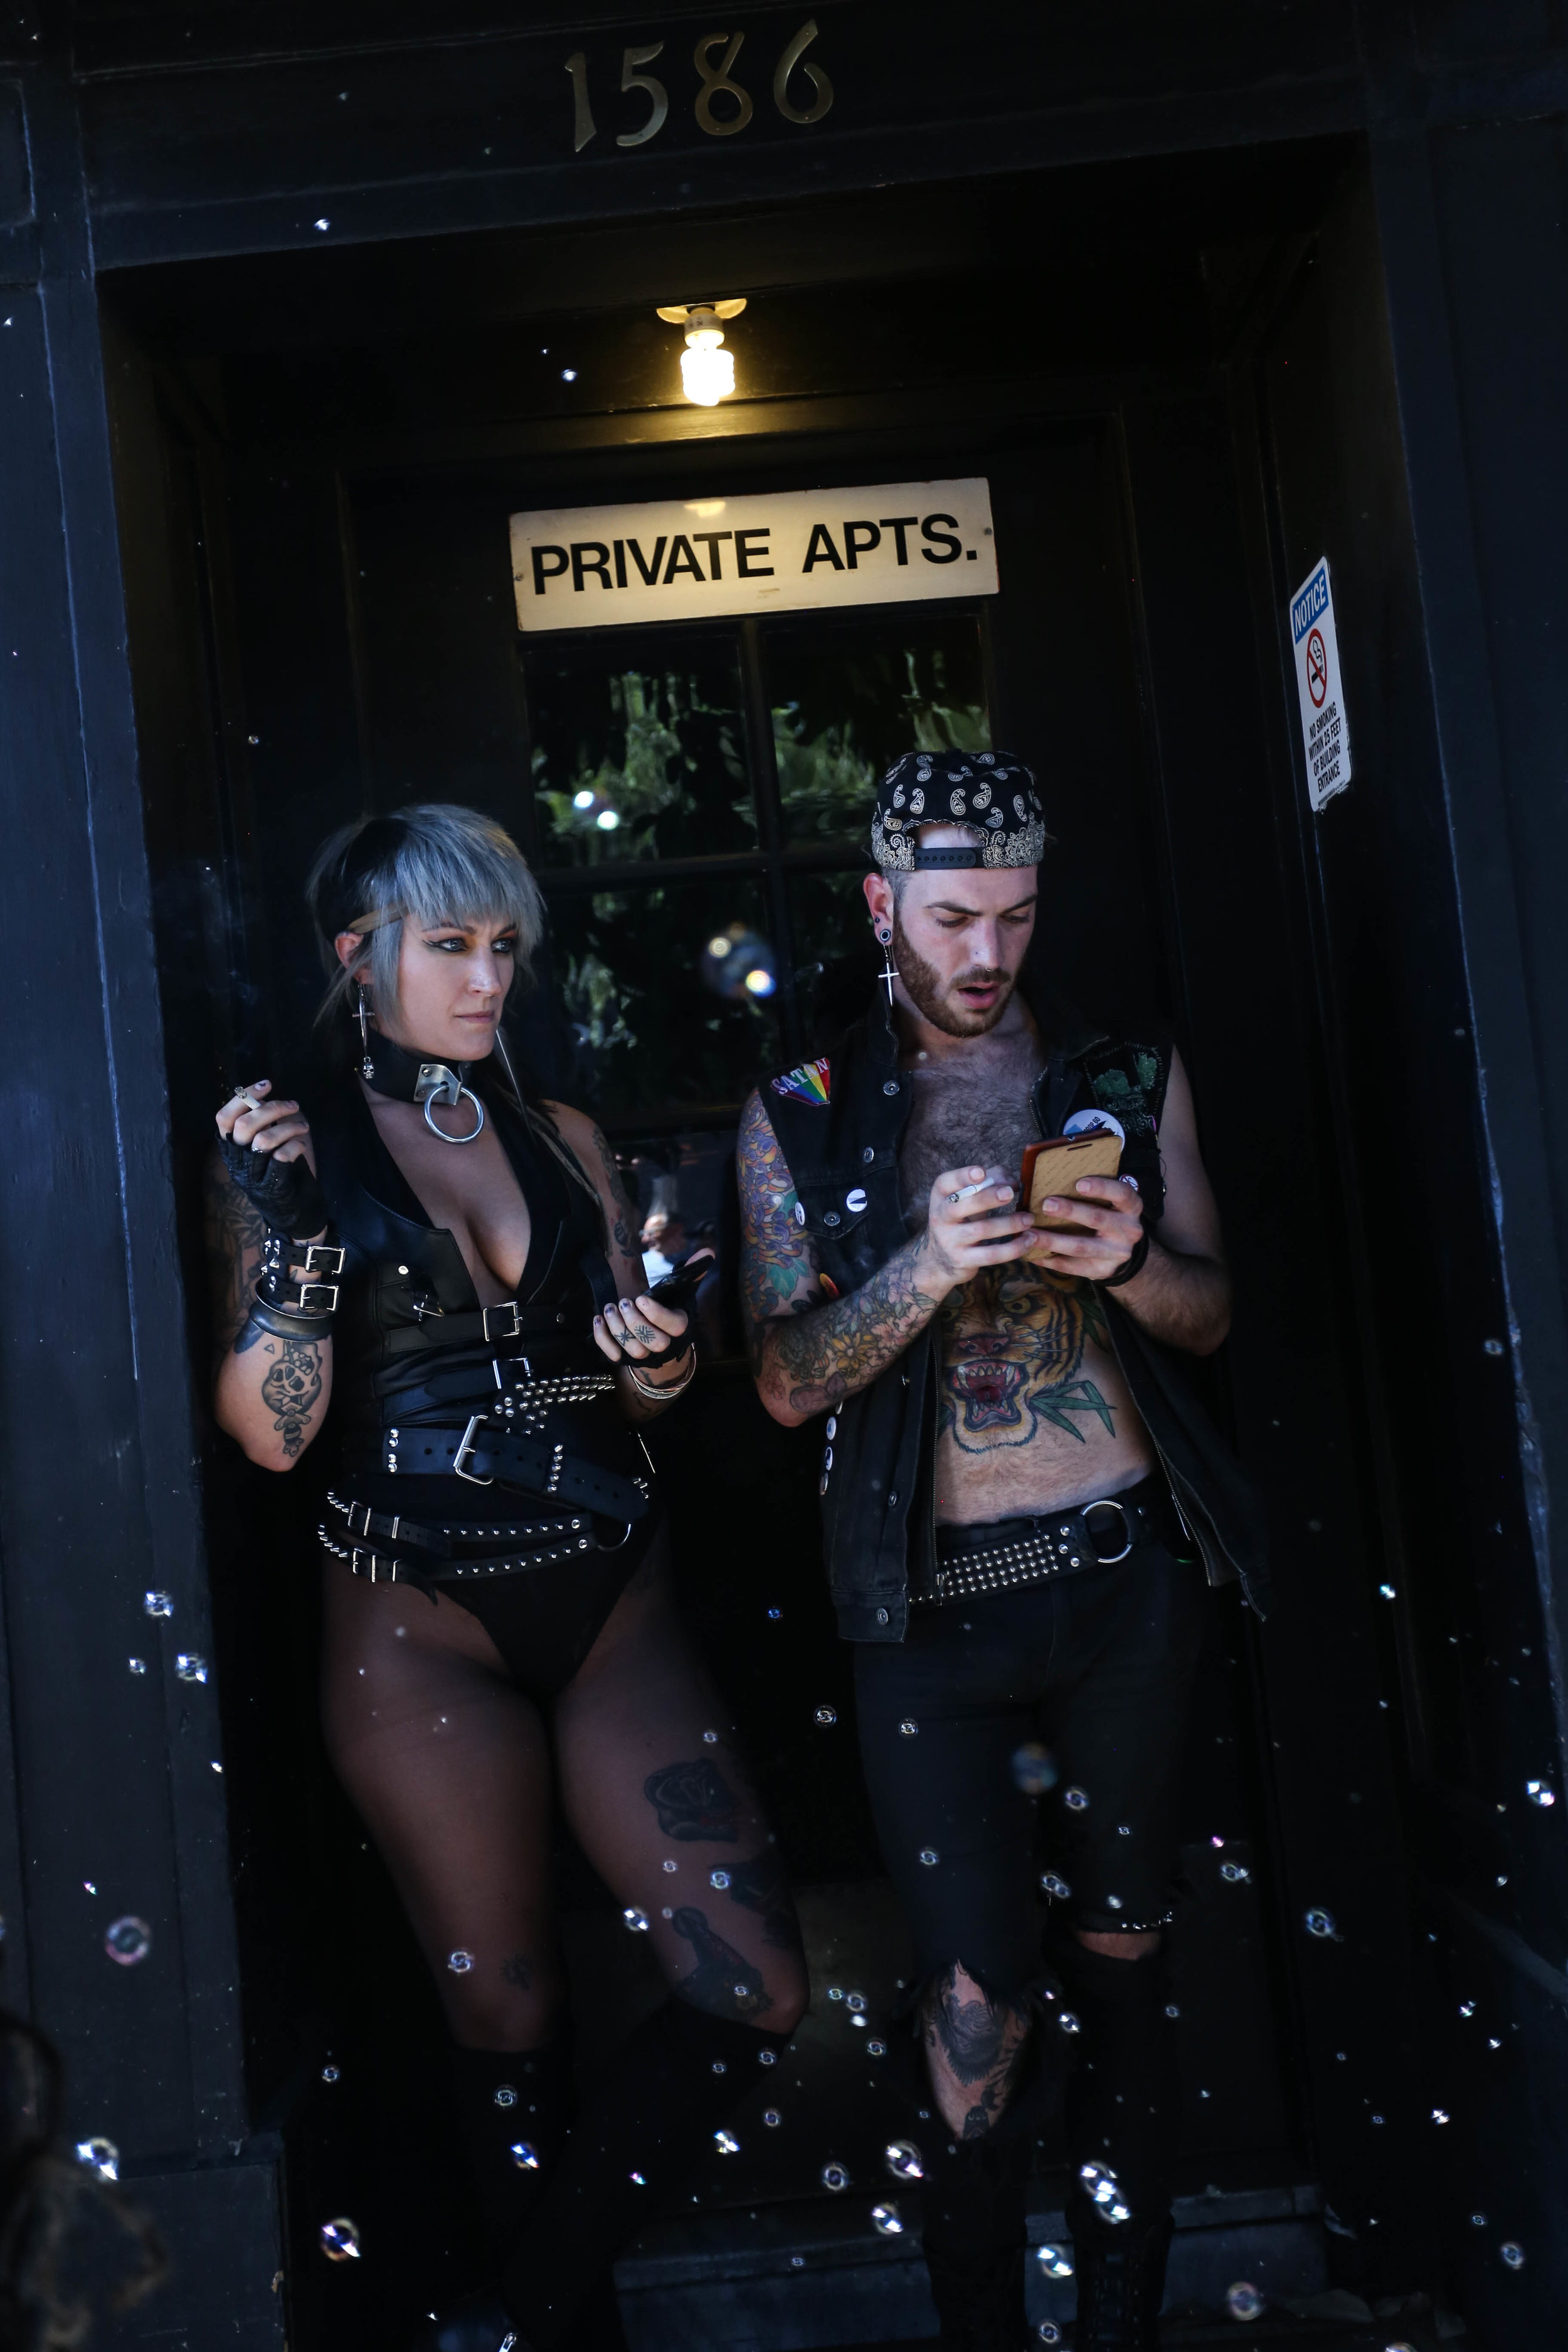 Chelsea Thebeau & Michael Flicker grab some shade at the Folsom Street Fair where hundreds gathered for the festivities, San Francisco, California, Sunday, Sept. 25, 2016. (Jessica Webb)